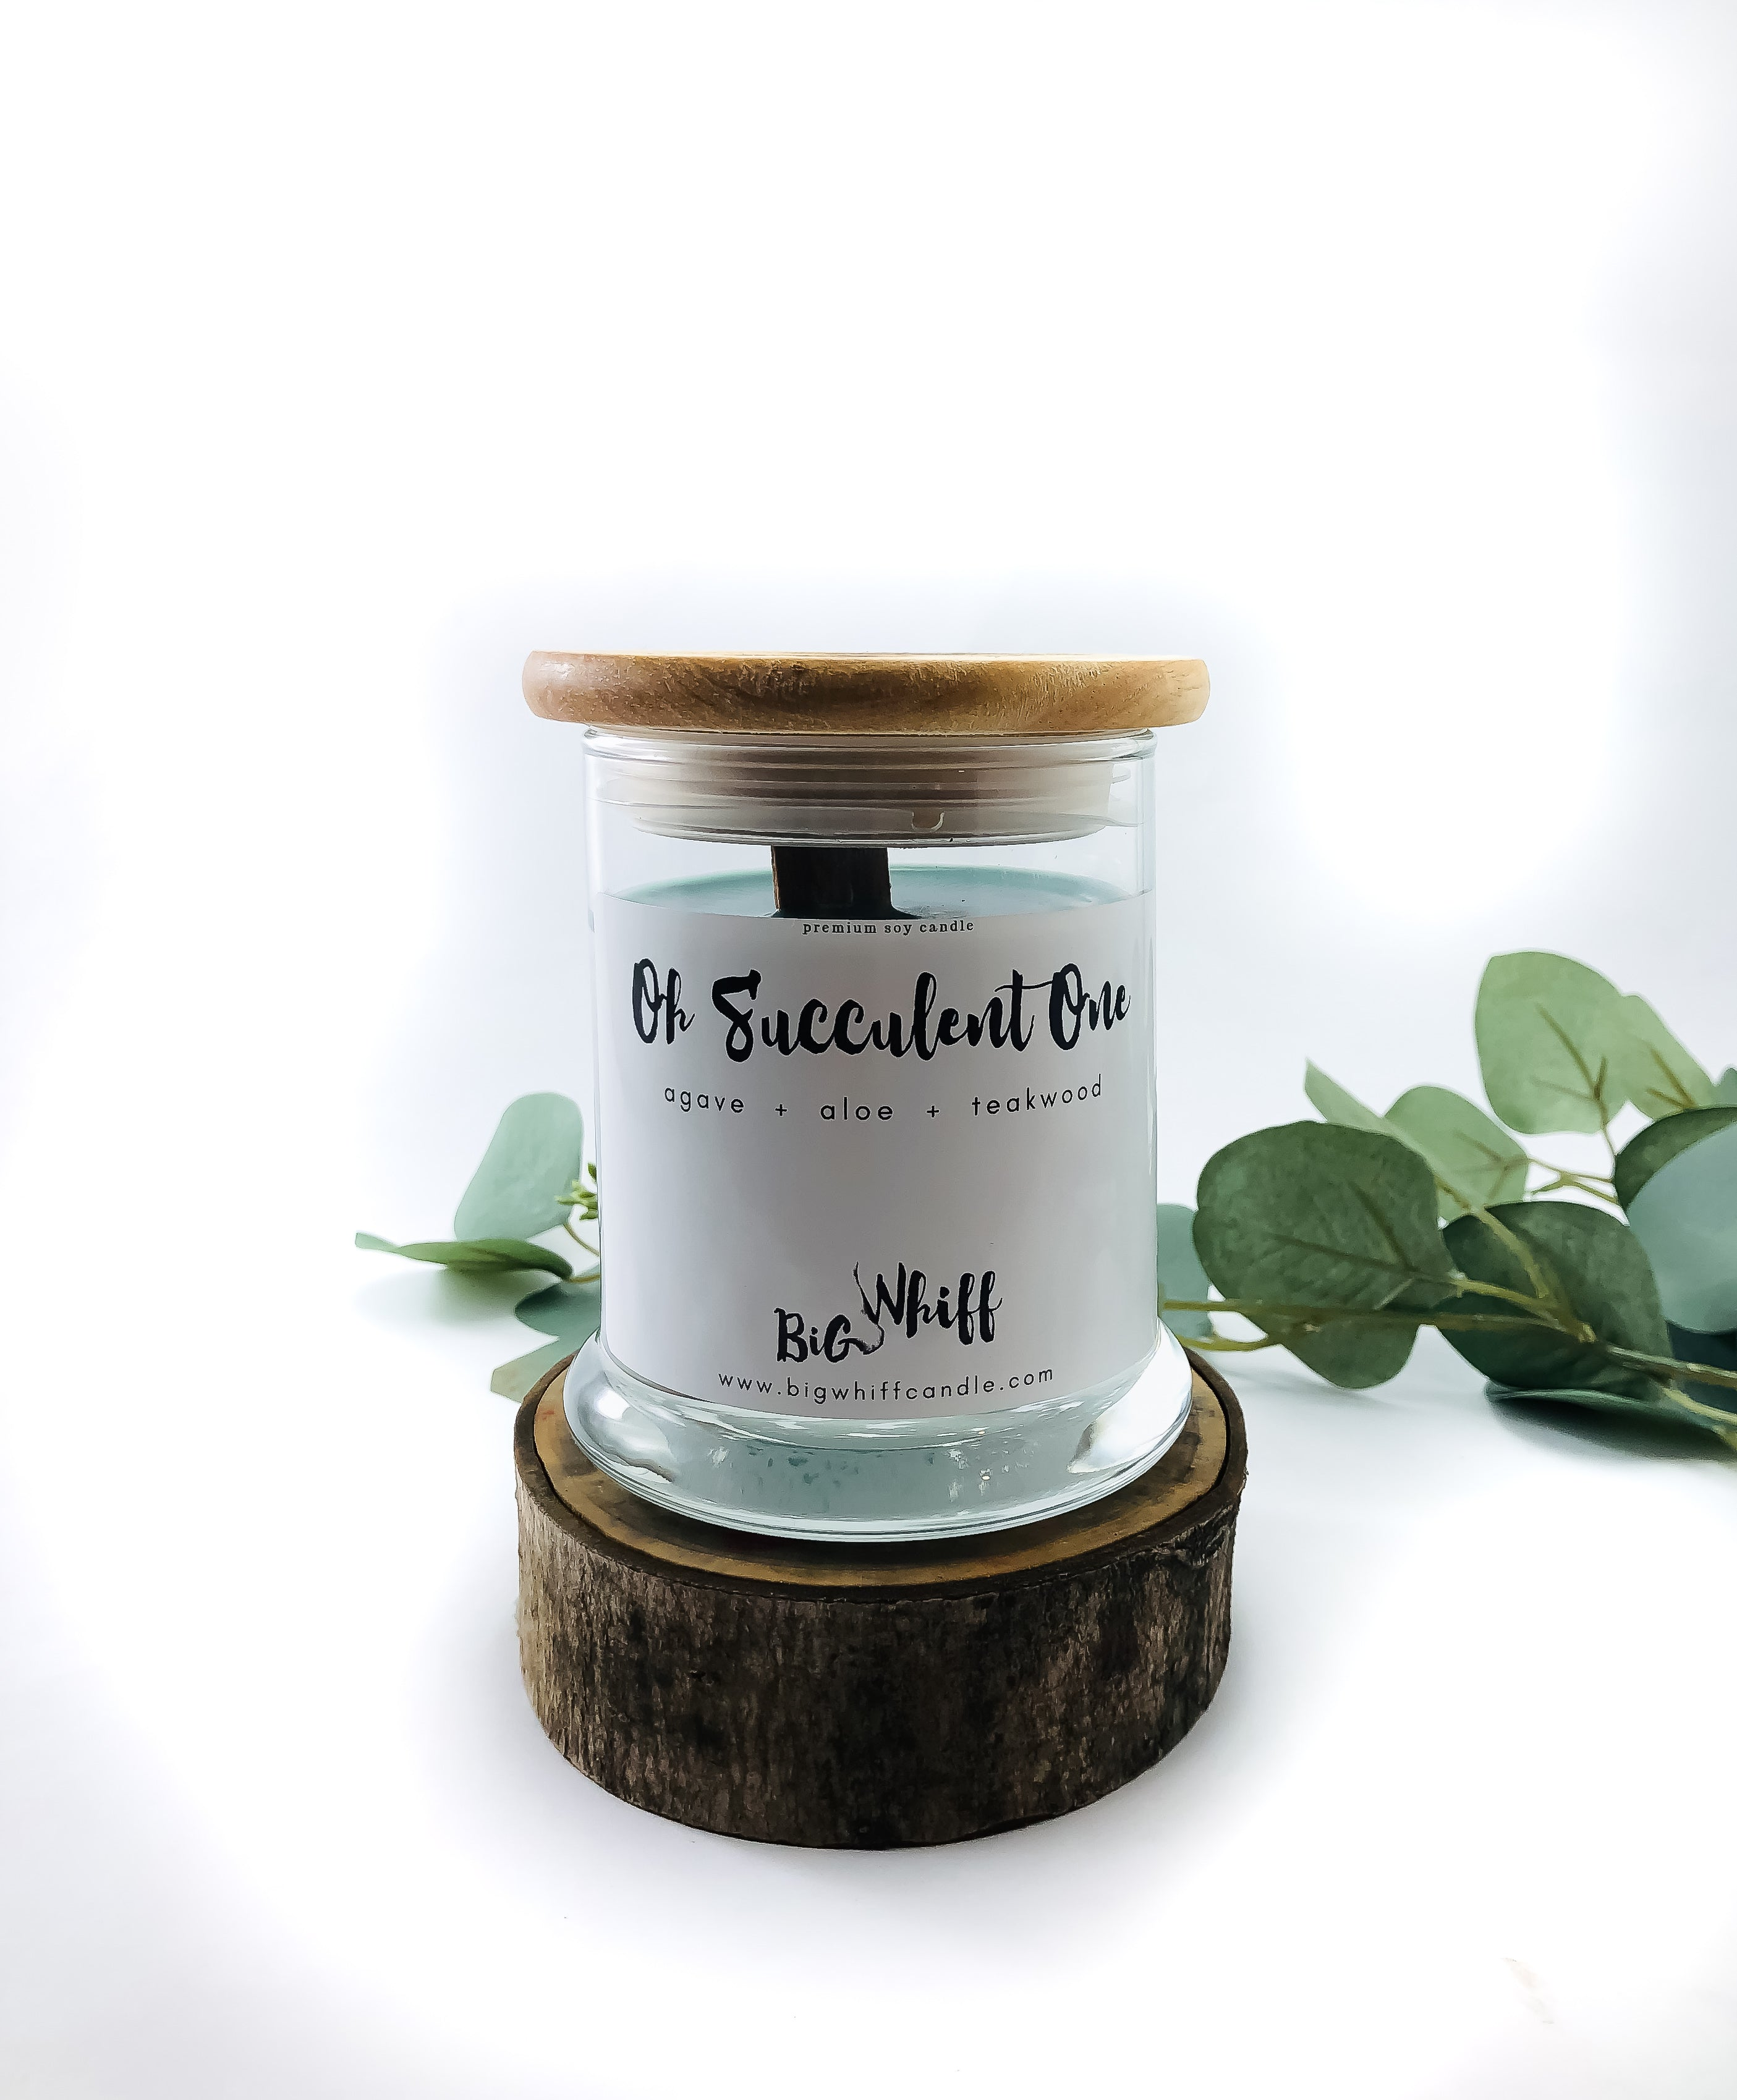 Wood Wick Candle - Oh Succulent One  -  Pure Soy Candle, Wood Wick Candles, Vegan Natural Organic, Handmade Glass Jar - Botanical Collection - Big Whiff Candle Co.